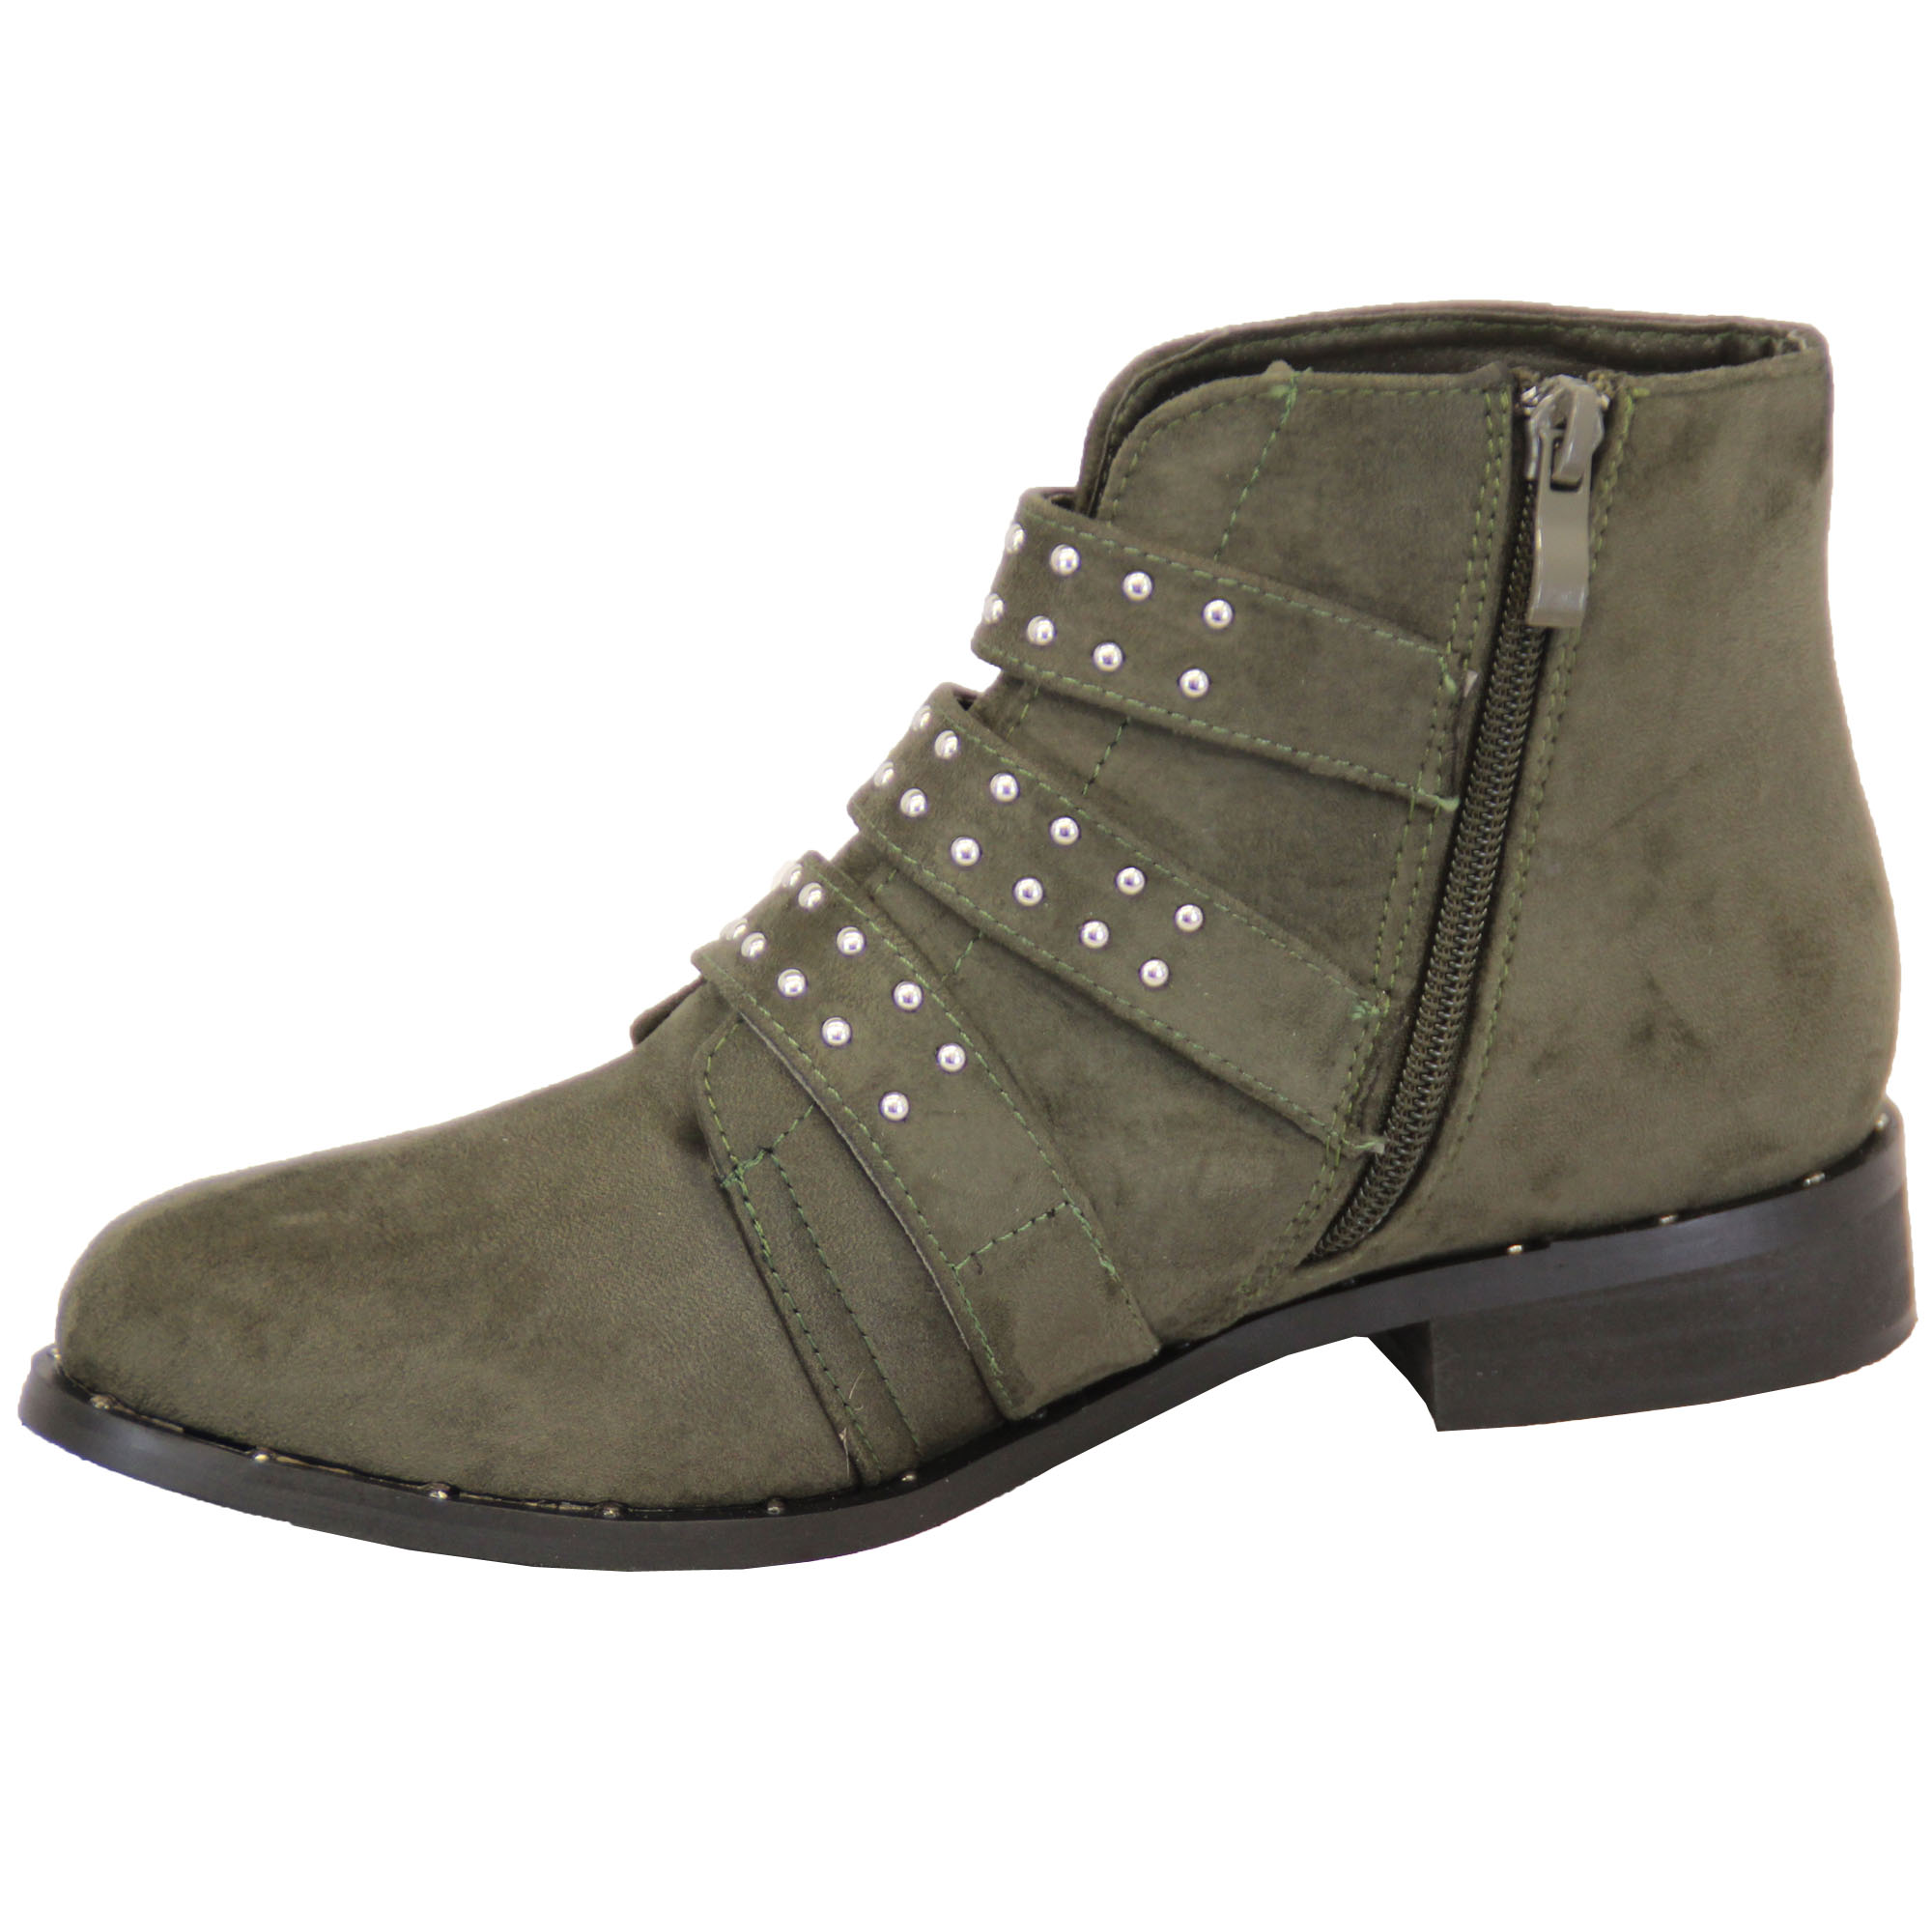 Ladies-Chelsea-Biker-Boots-Womens-Suede-Look-Studded-High-Ankle-Zip-Buckle-Shoes thumbnail 12